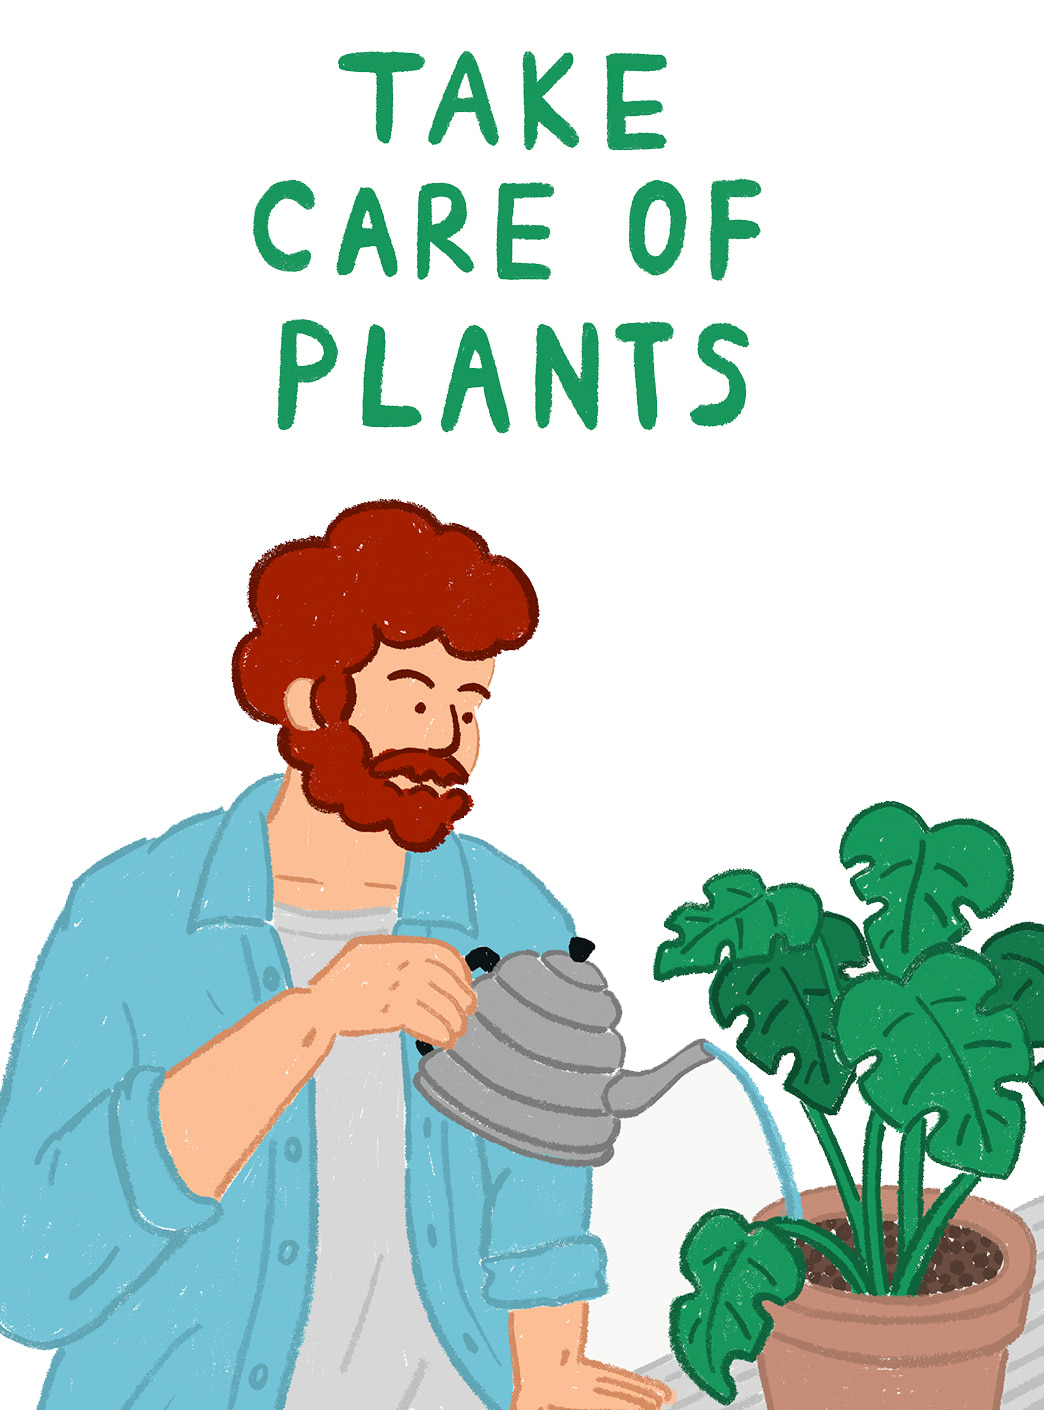 take care of plants A3 포스터